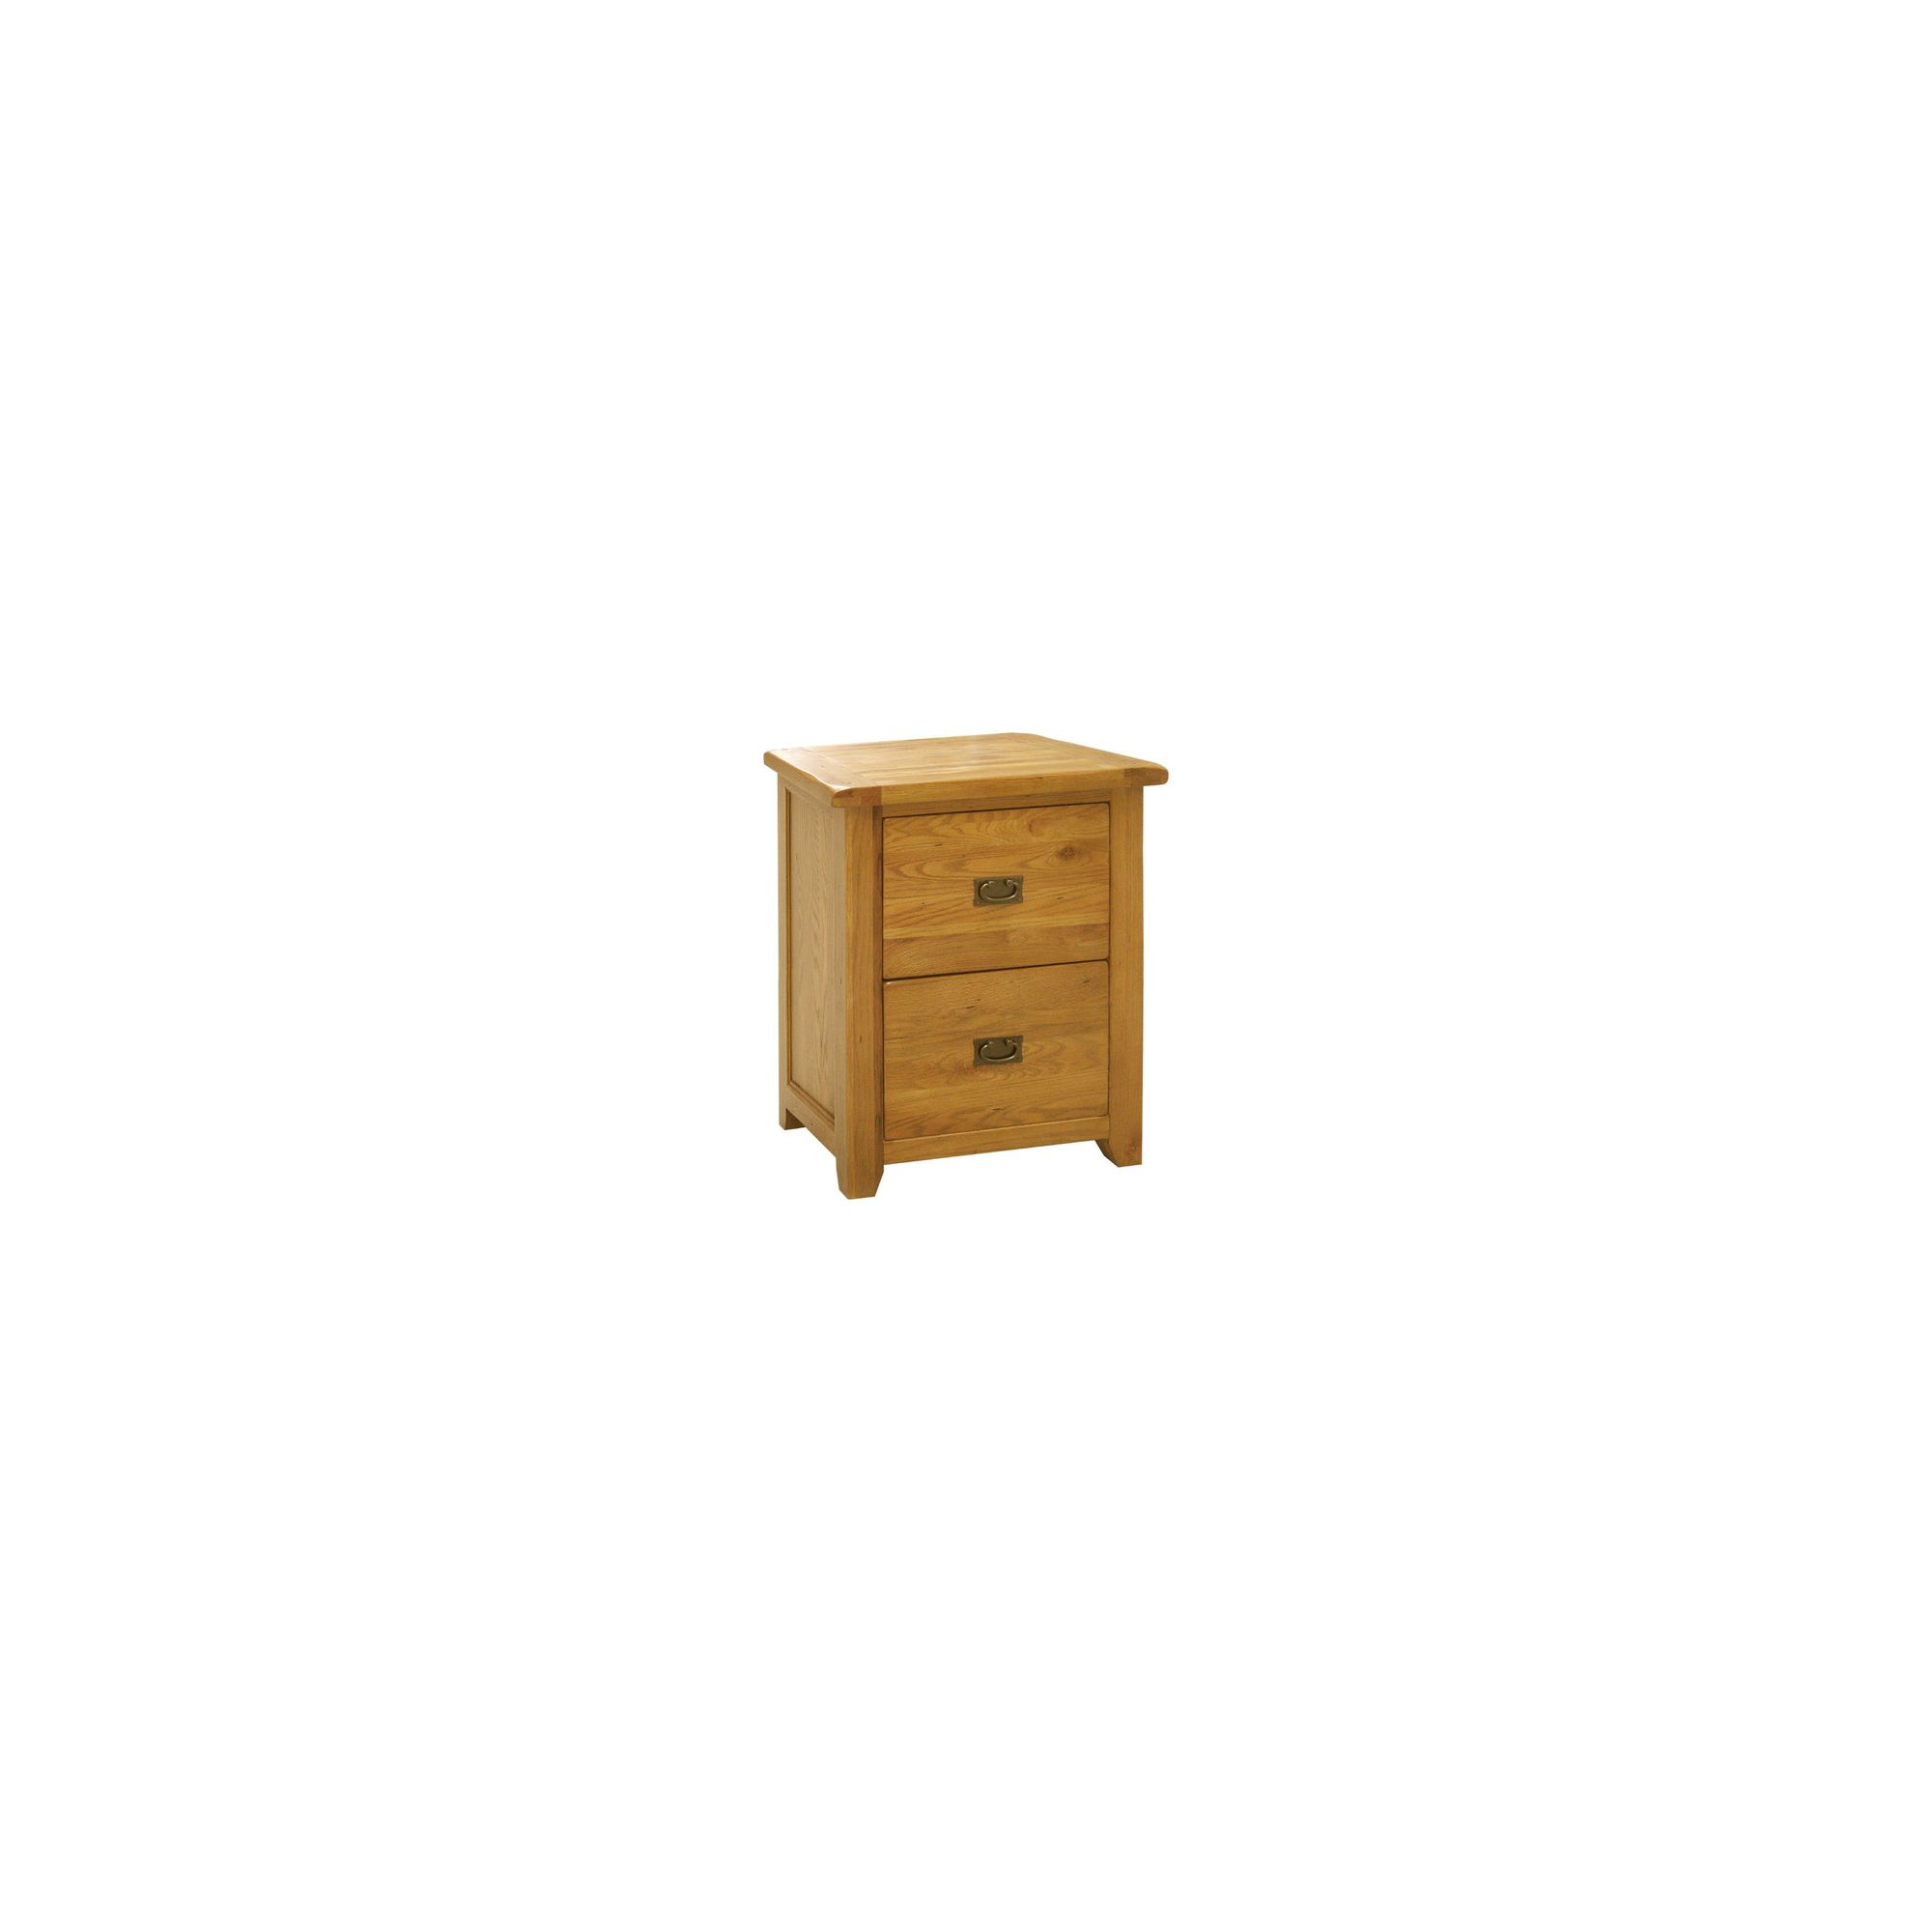 Kelburn Furniture Bordeaux 2 Drawer Filing Cabinet in Medium Oak Stain and Satin Lacquer at Tesco Direct